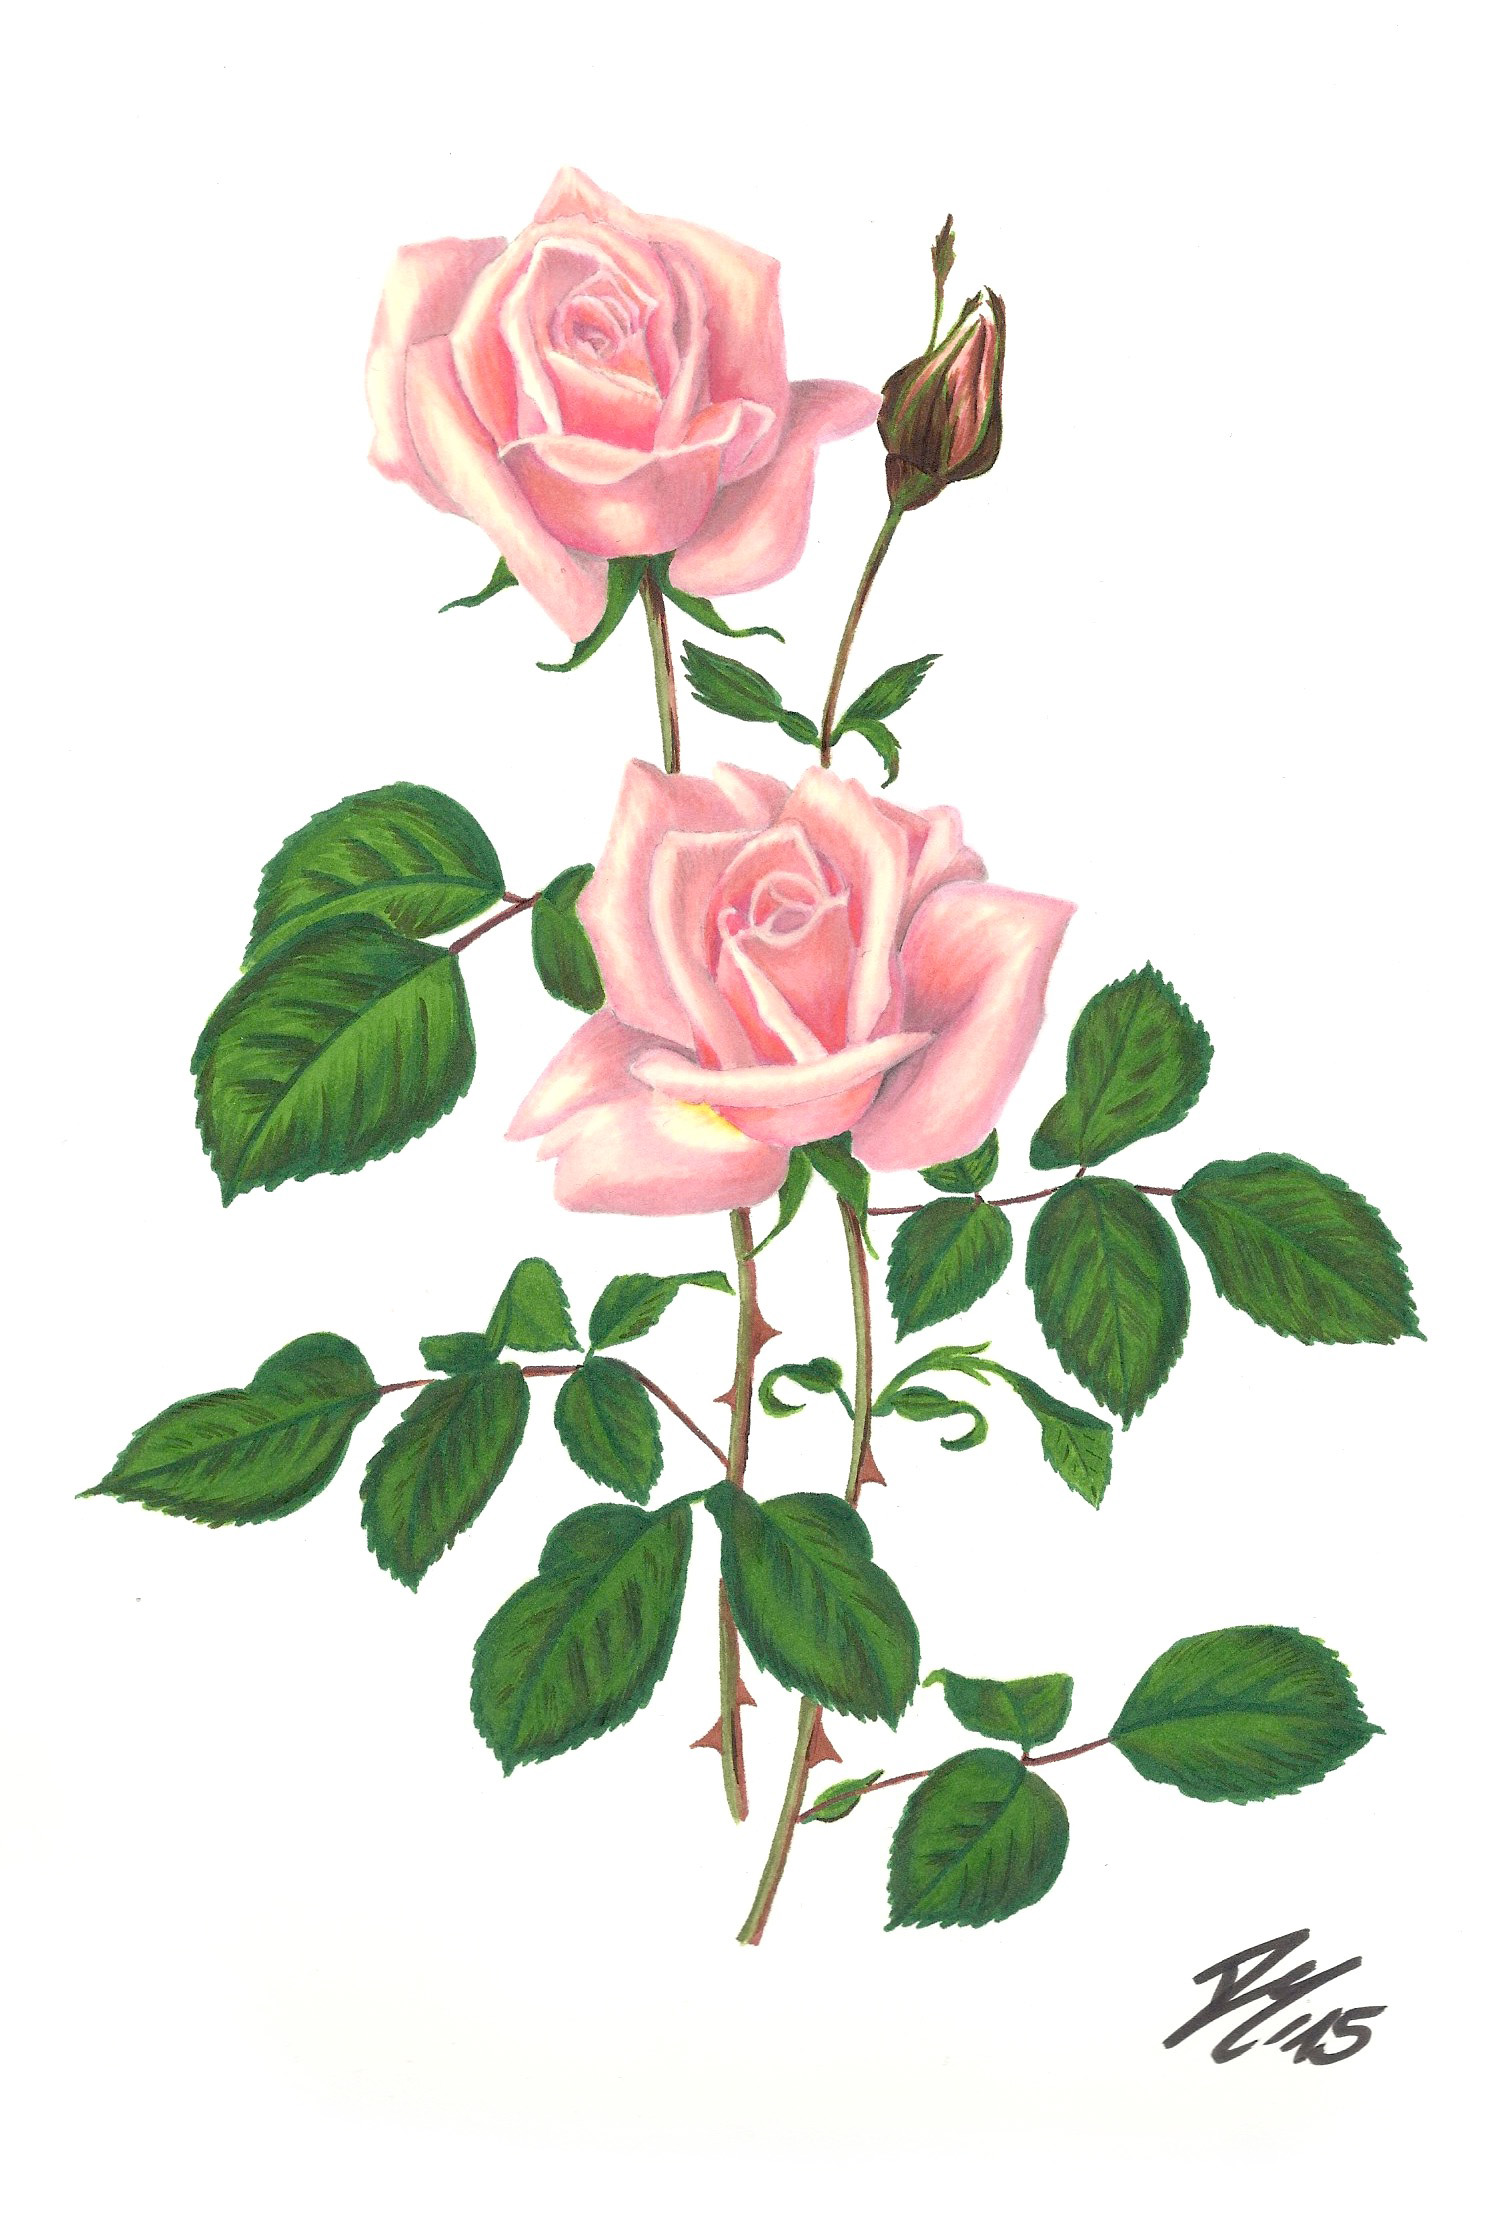 Roses Pictures Drawing at GetDrawings.com | Free for personal use ...